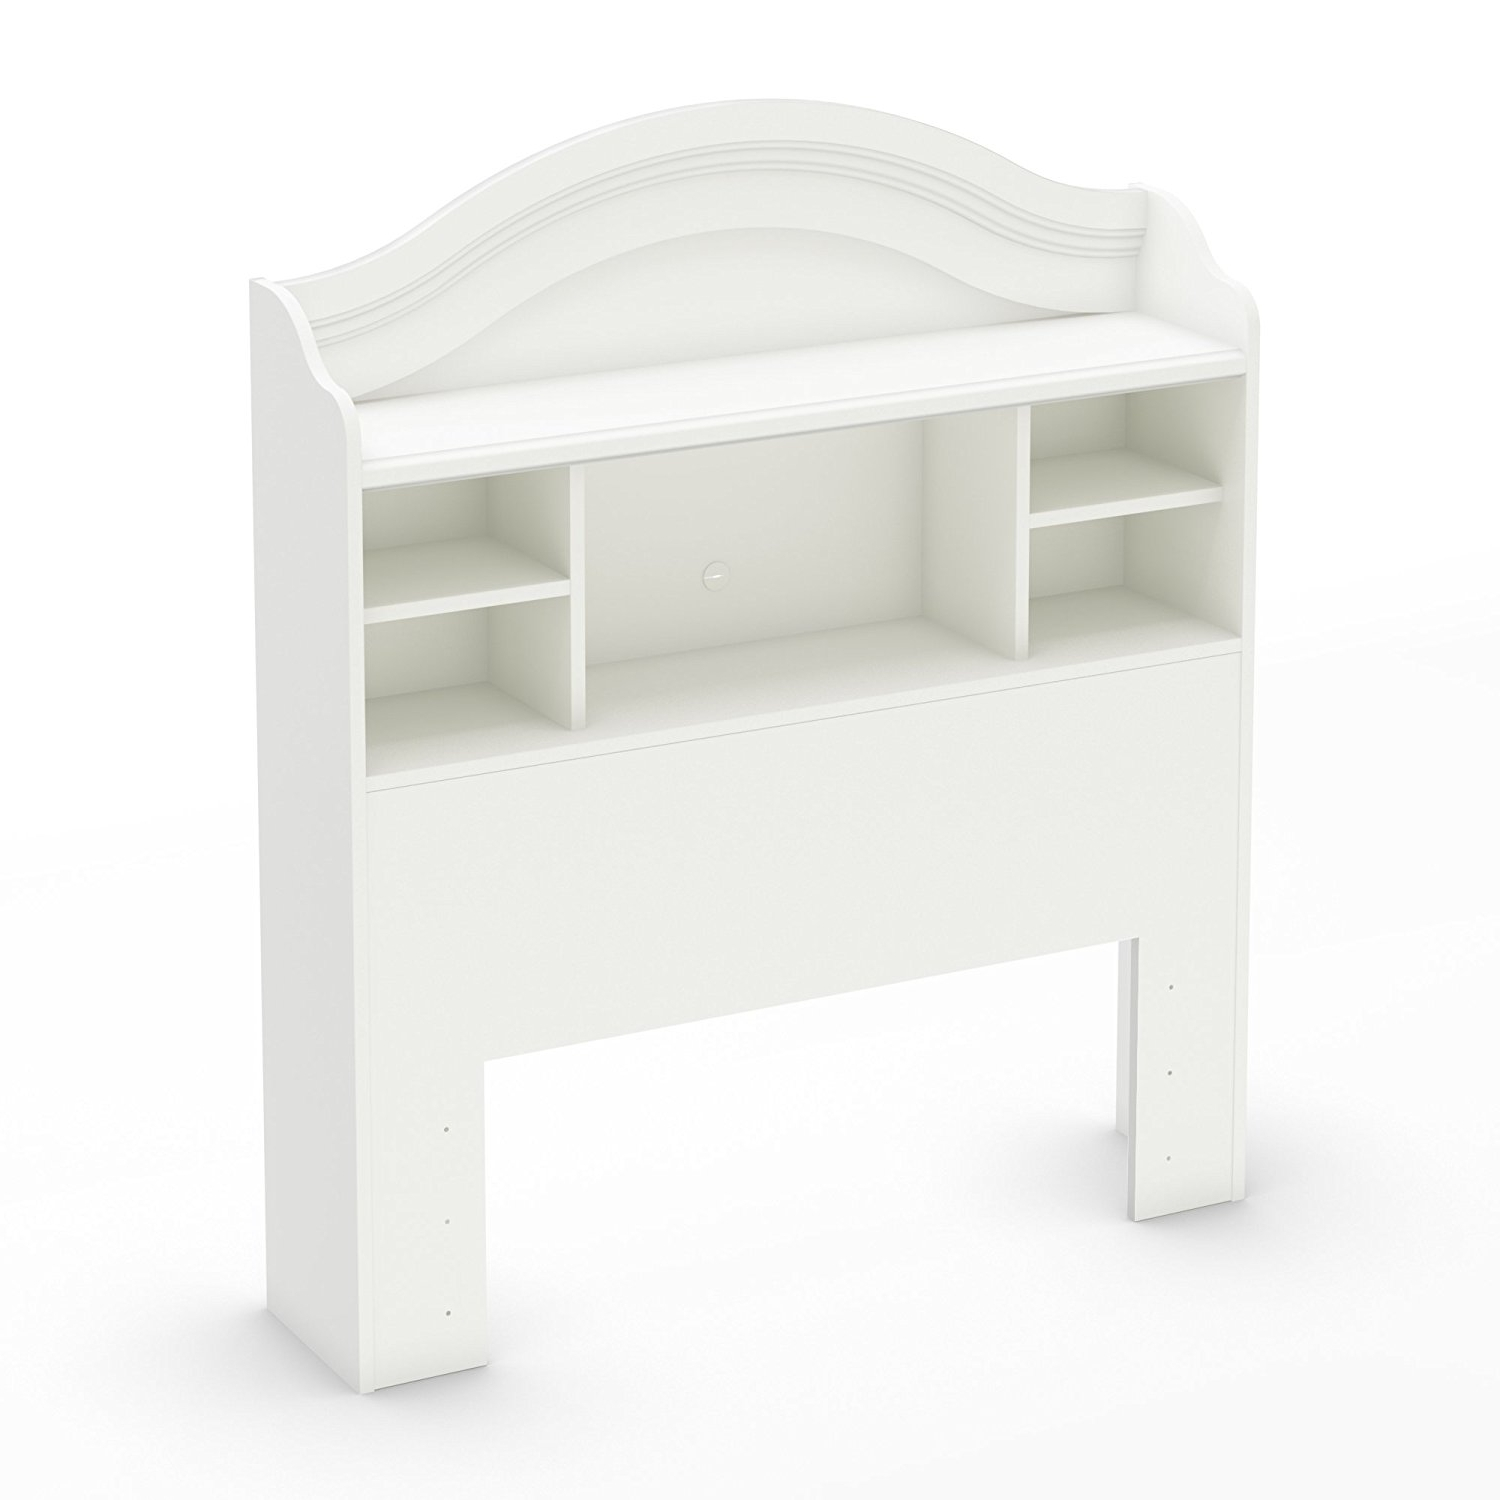 Most Current Amazon: South Shore Savannah Twin Bookcase Headboard, Pure Regarding Twin Headboard Bookcases (View 4 of 15)